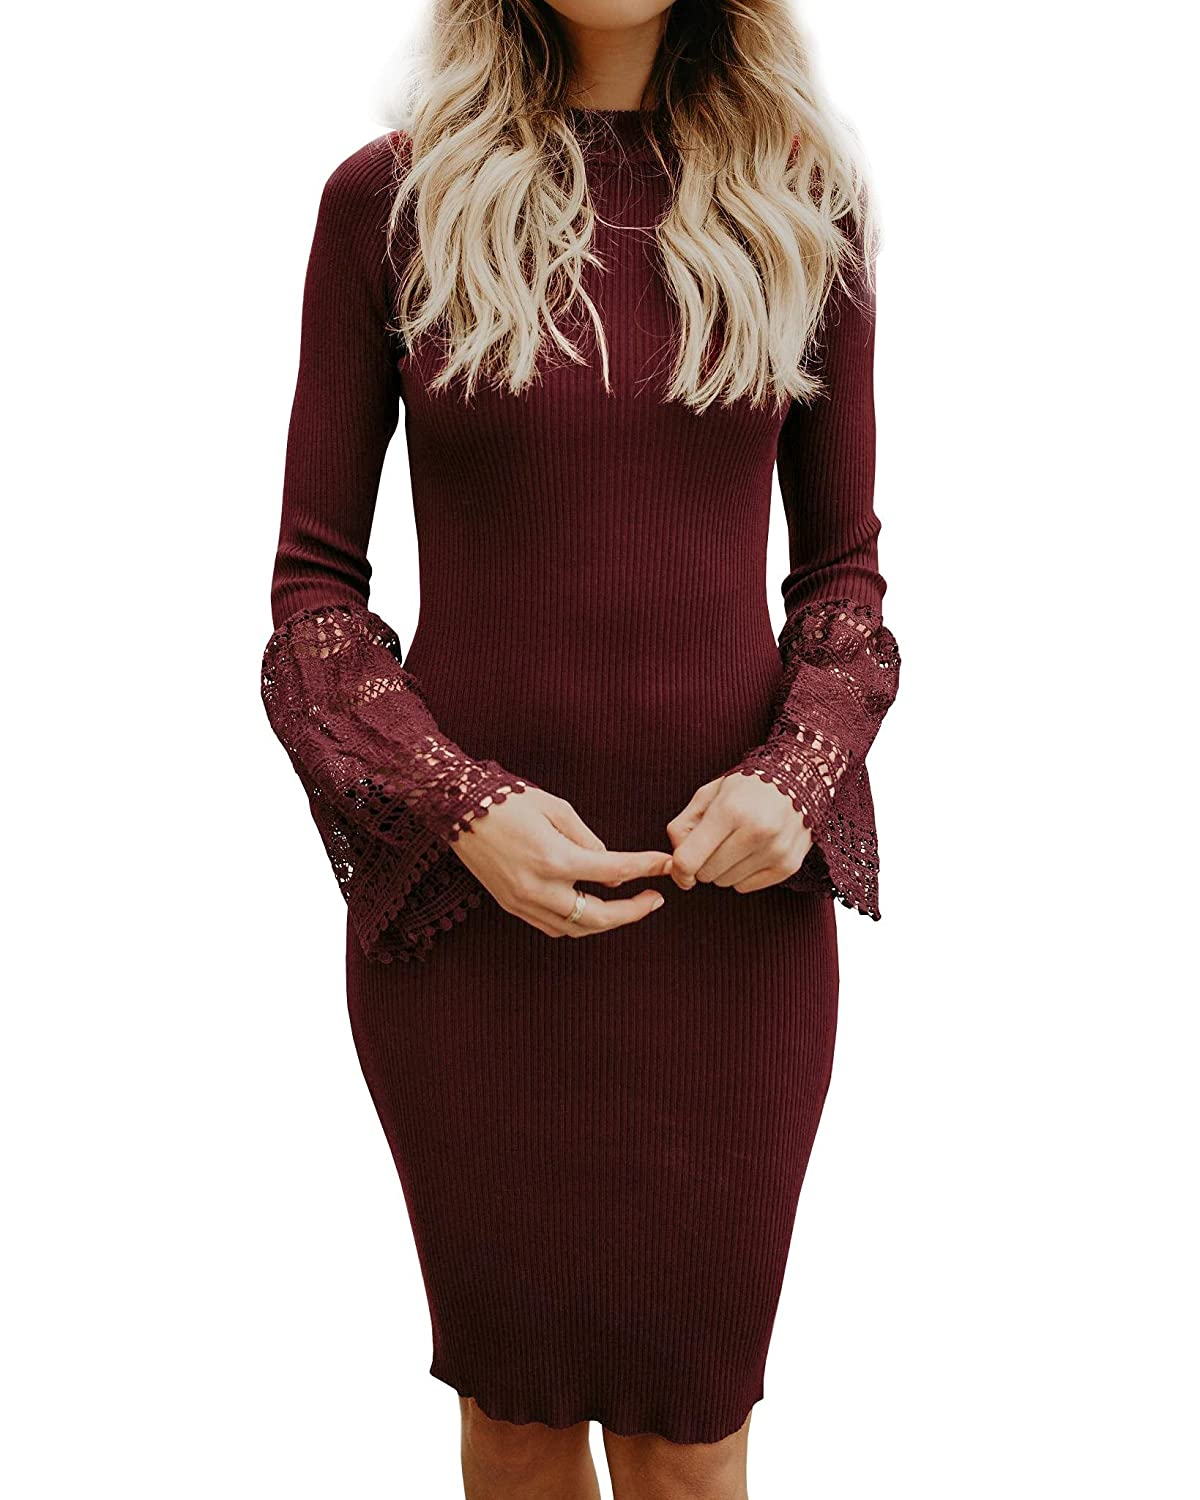 ee2c3ee3898 Top 10 wholesale Lace Mock Neck Sheath Dress - Chinabrands.com